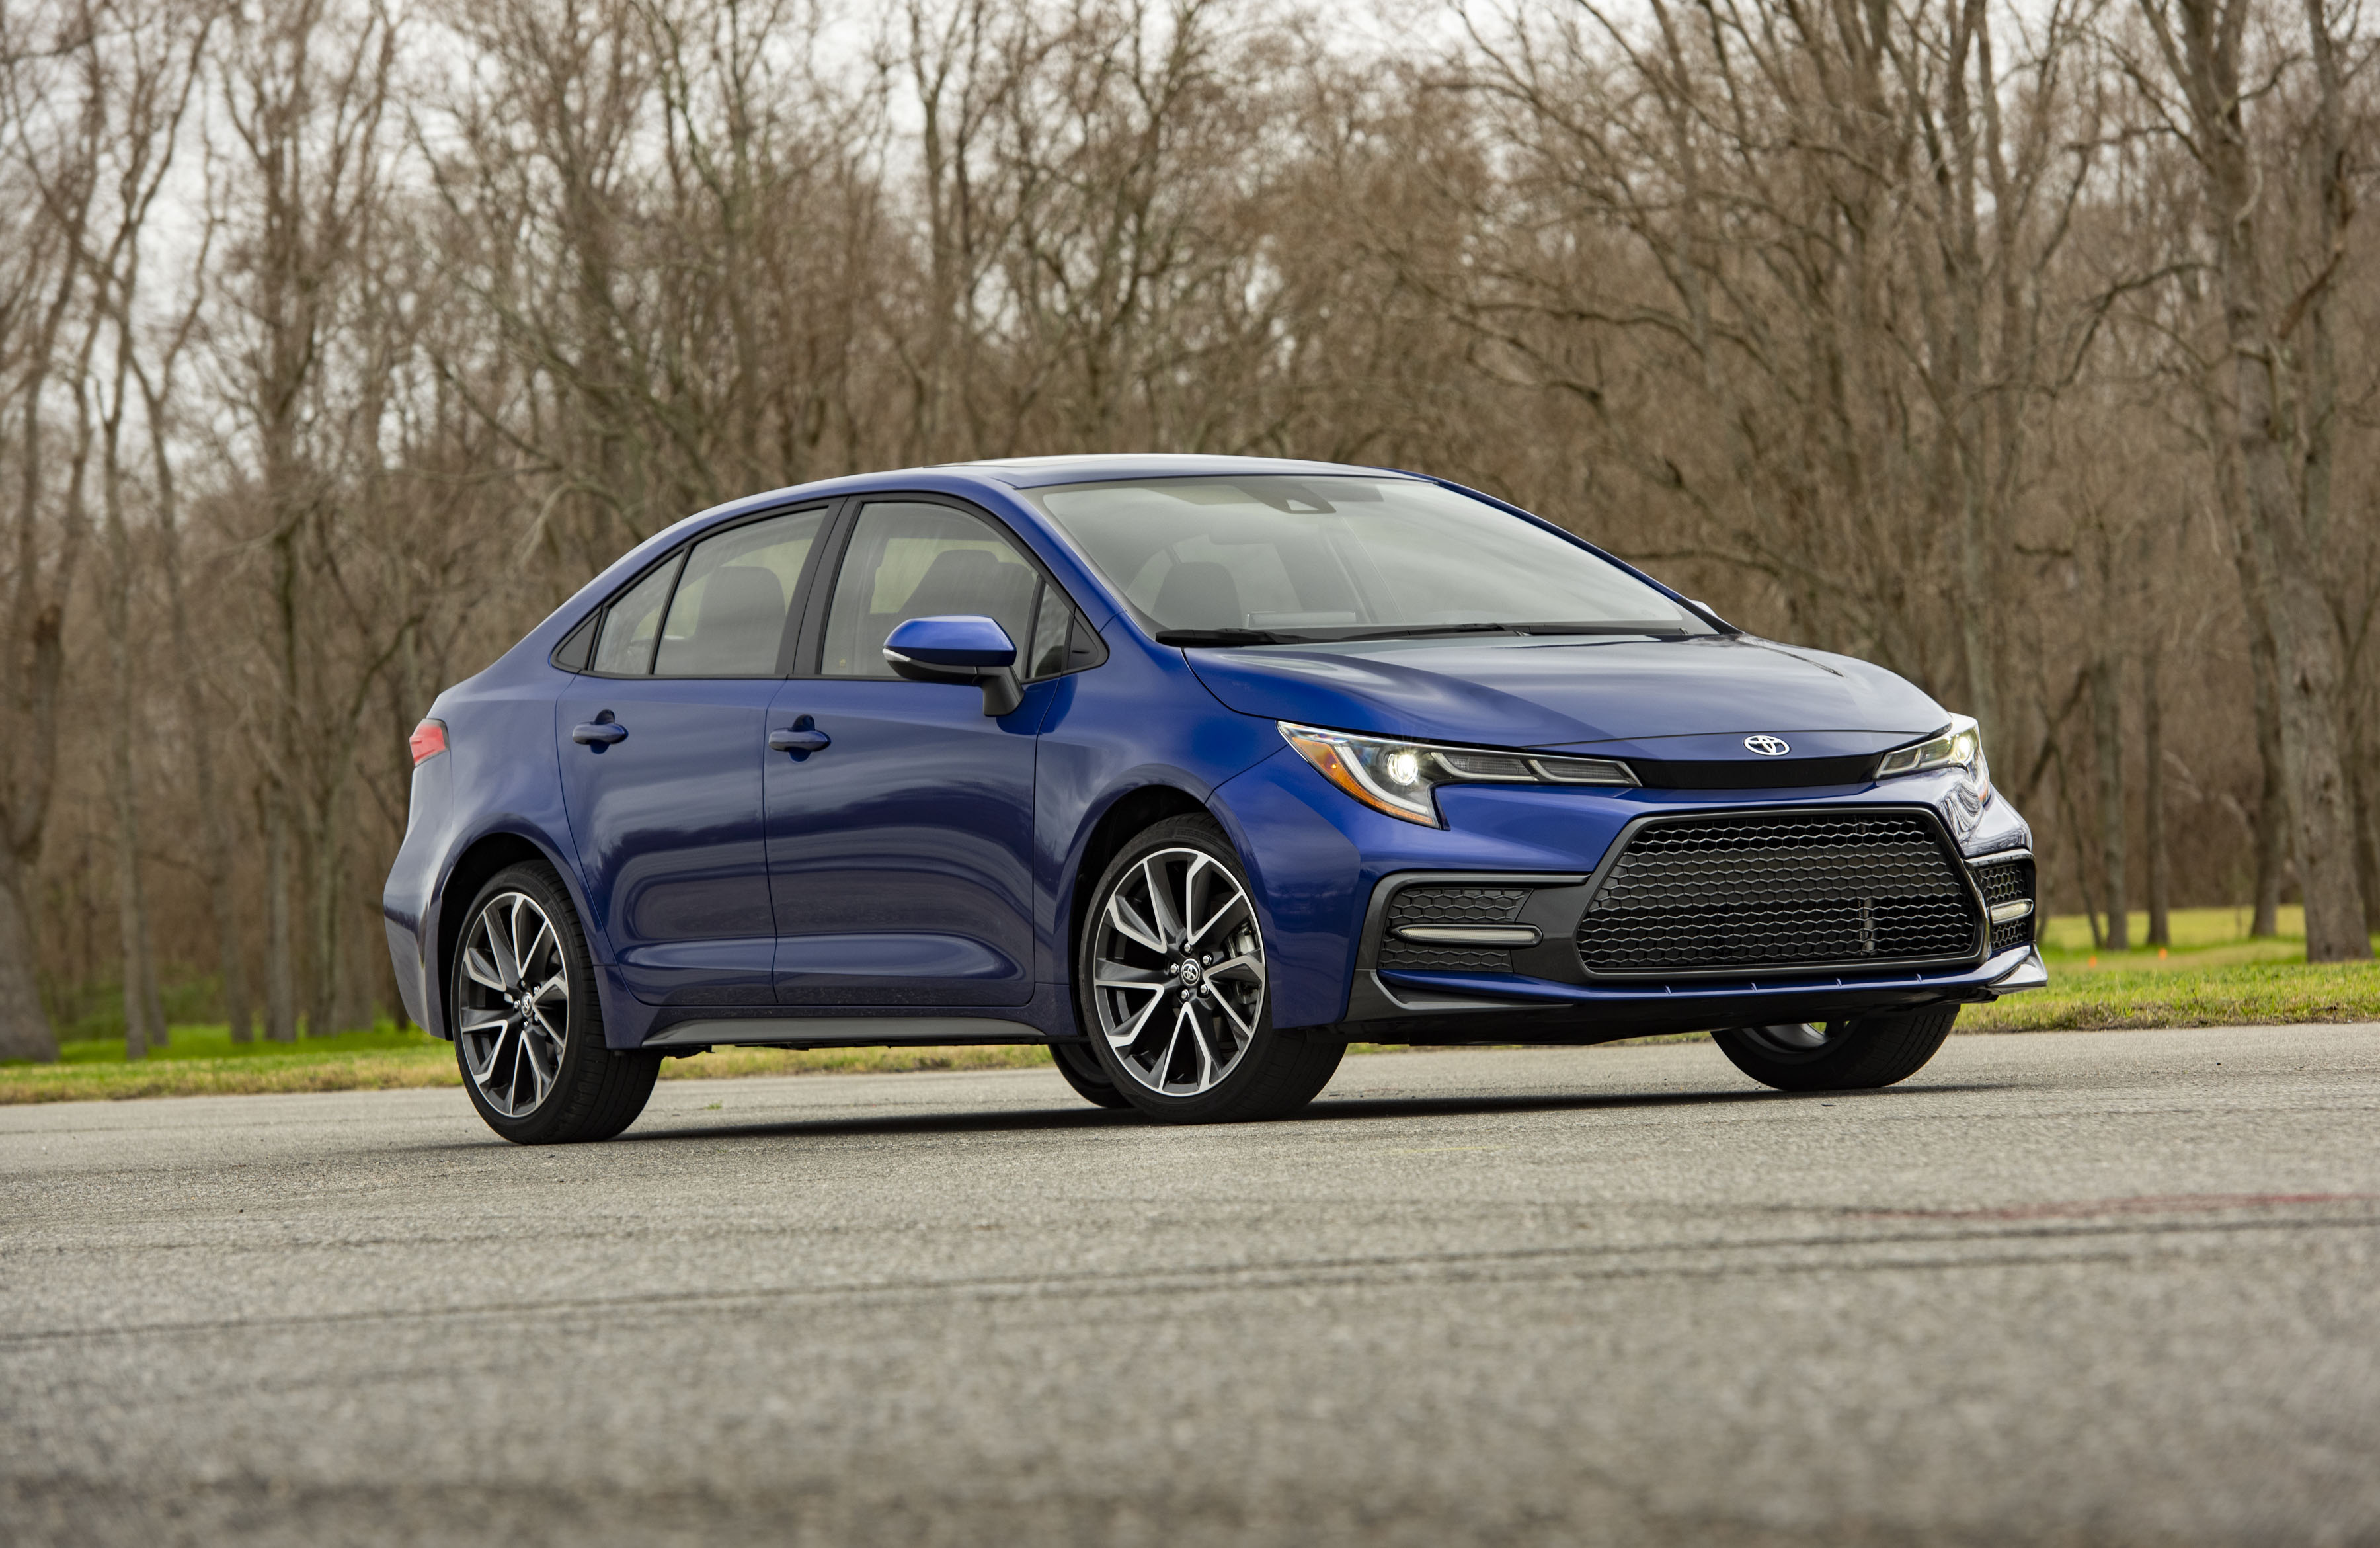 the best toyota corolla years for a used model